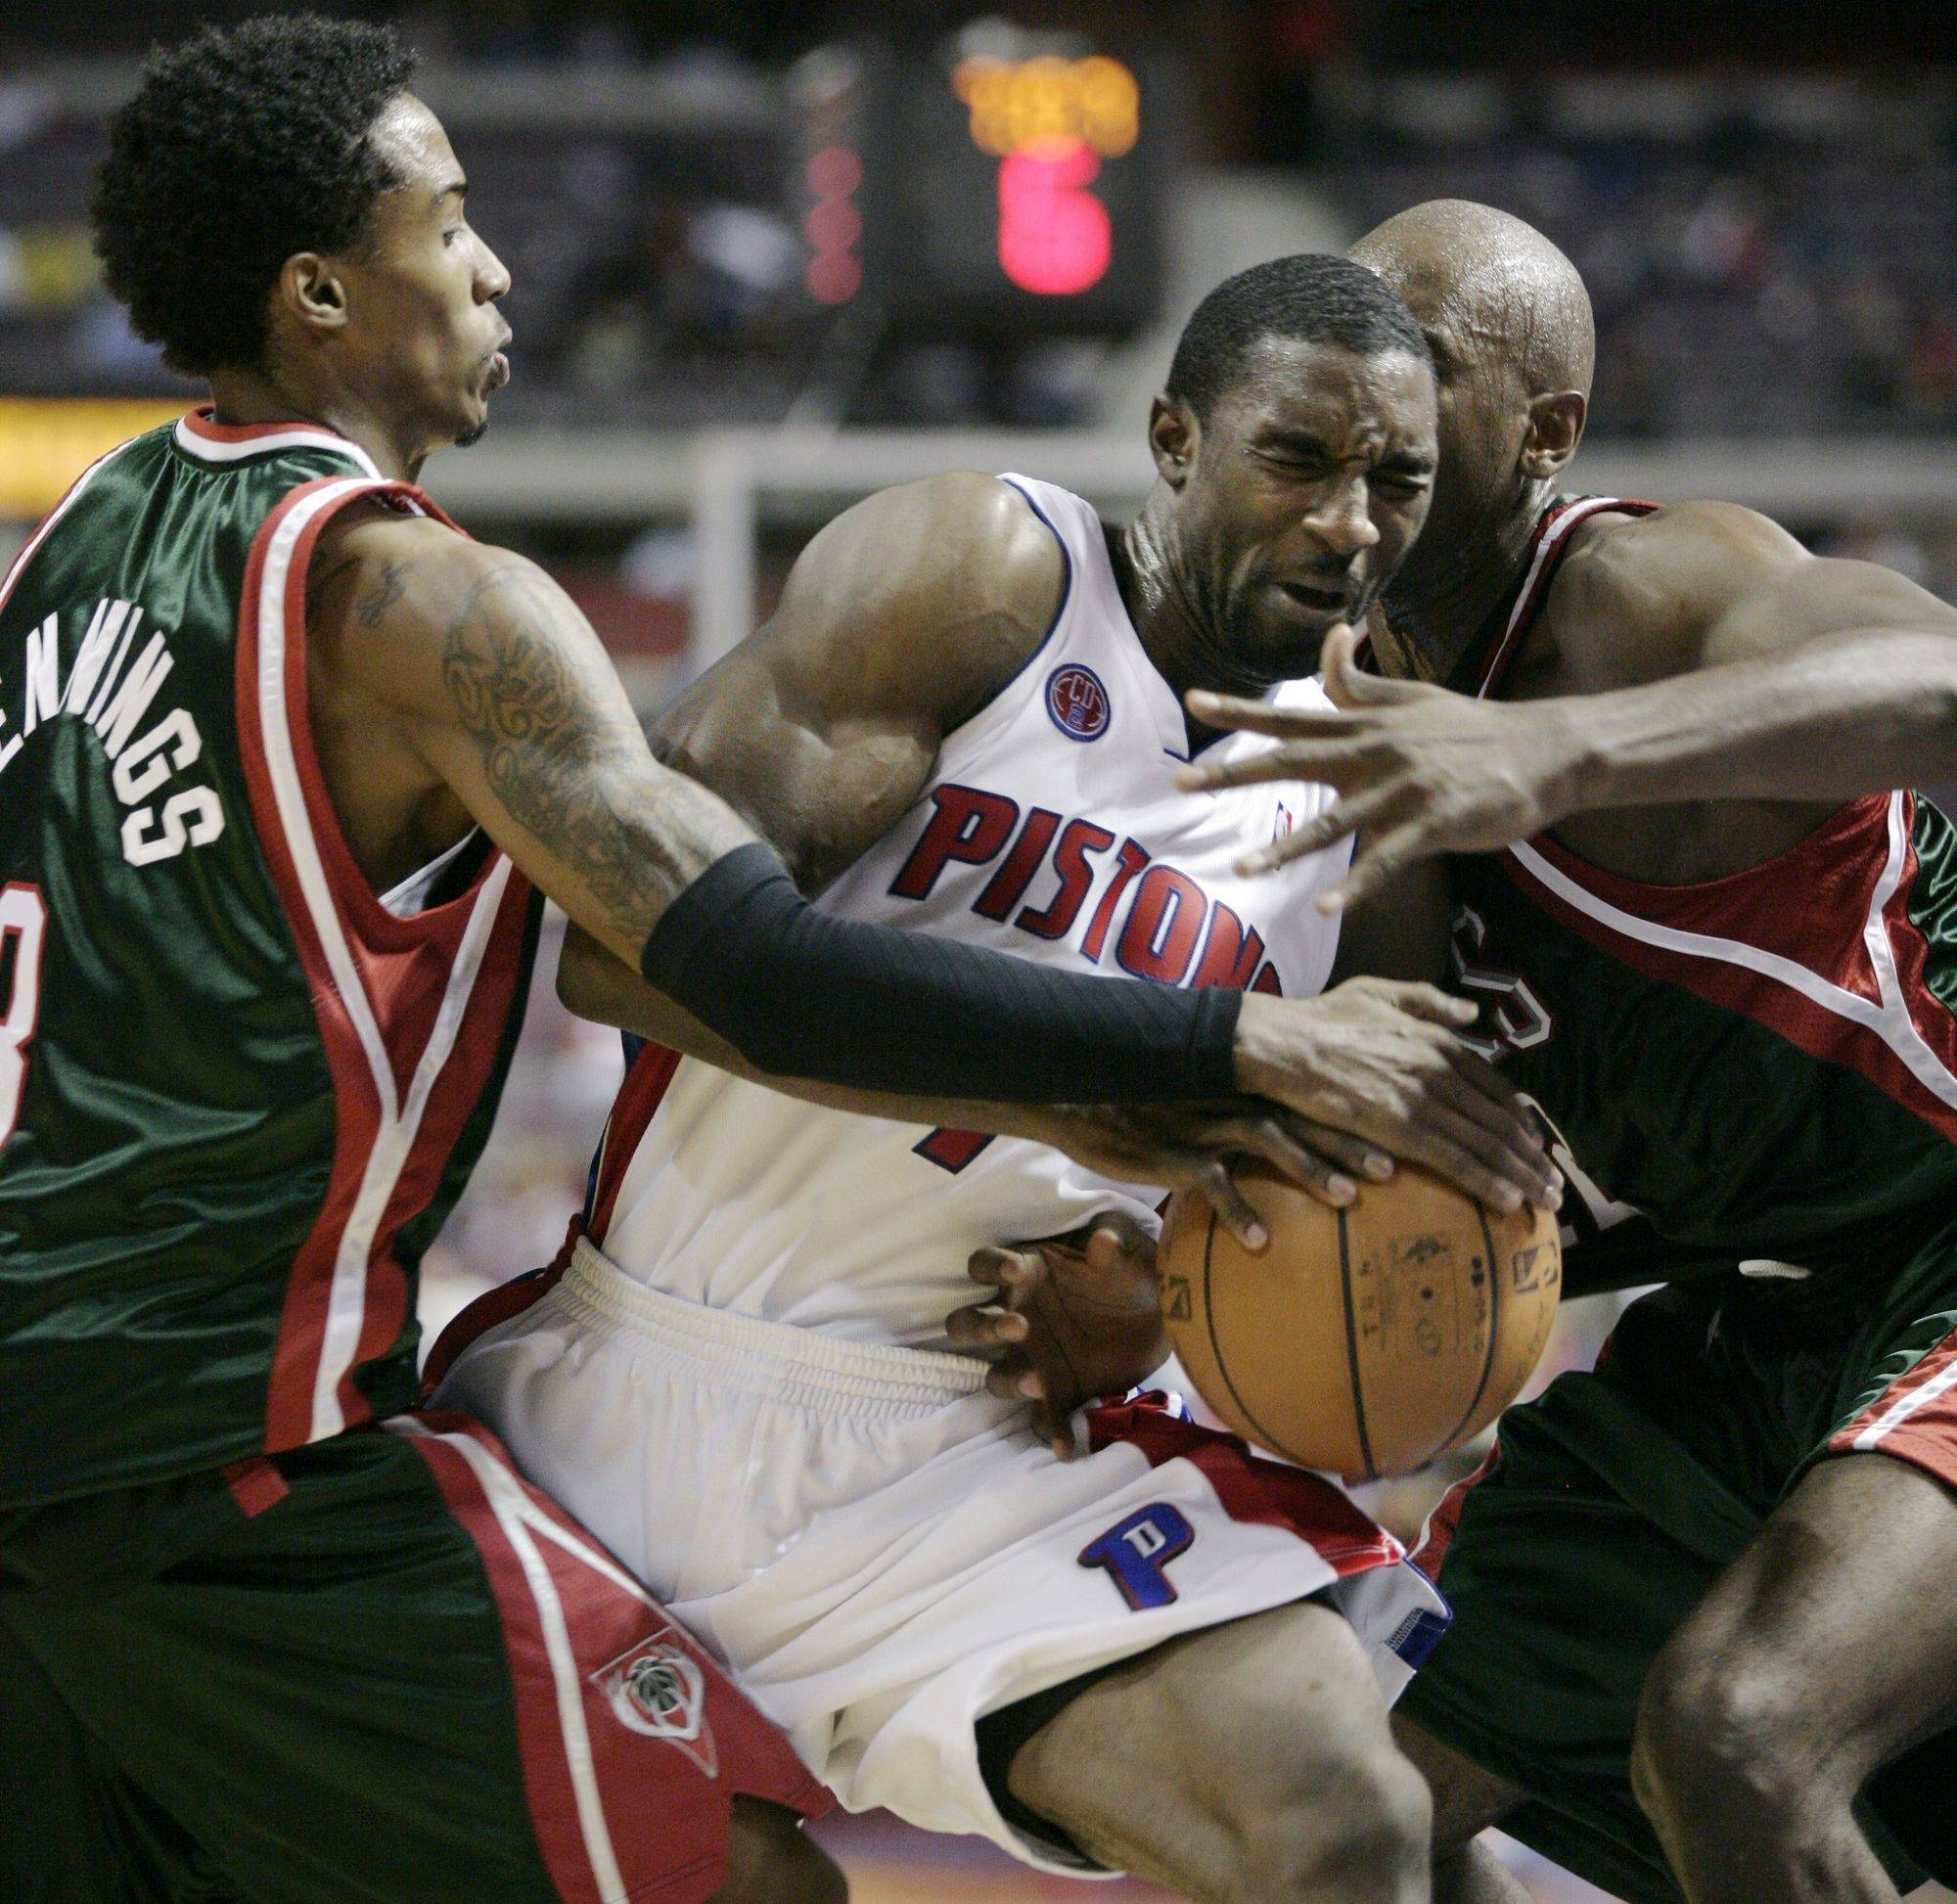 Former Bull Ben Gordon, center, fights for the ball.